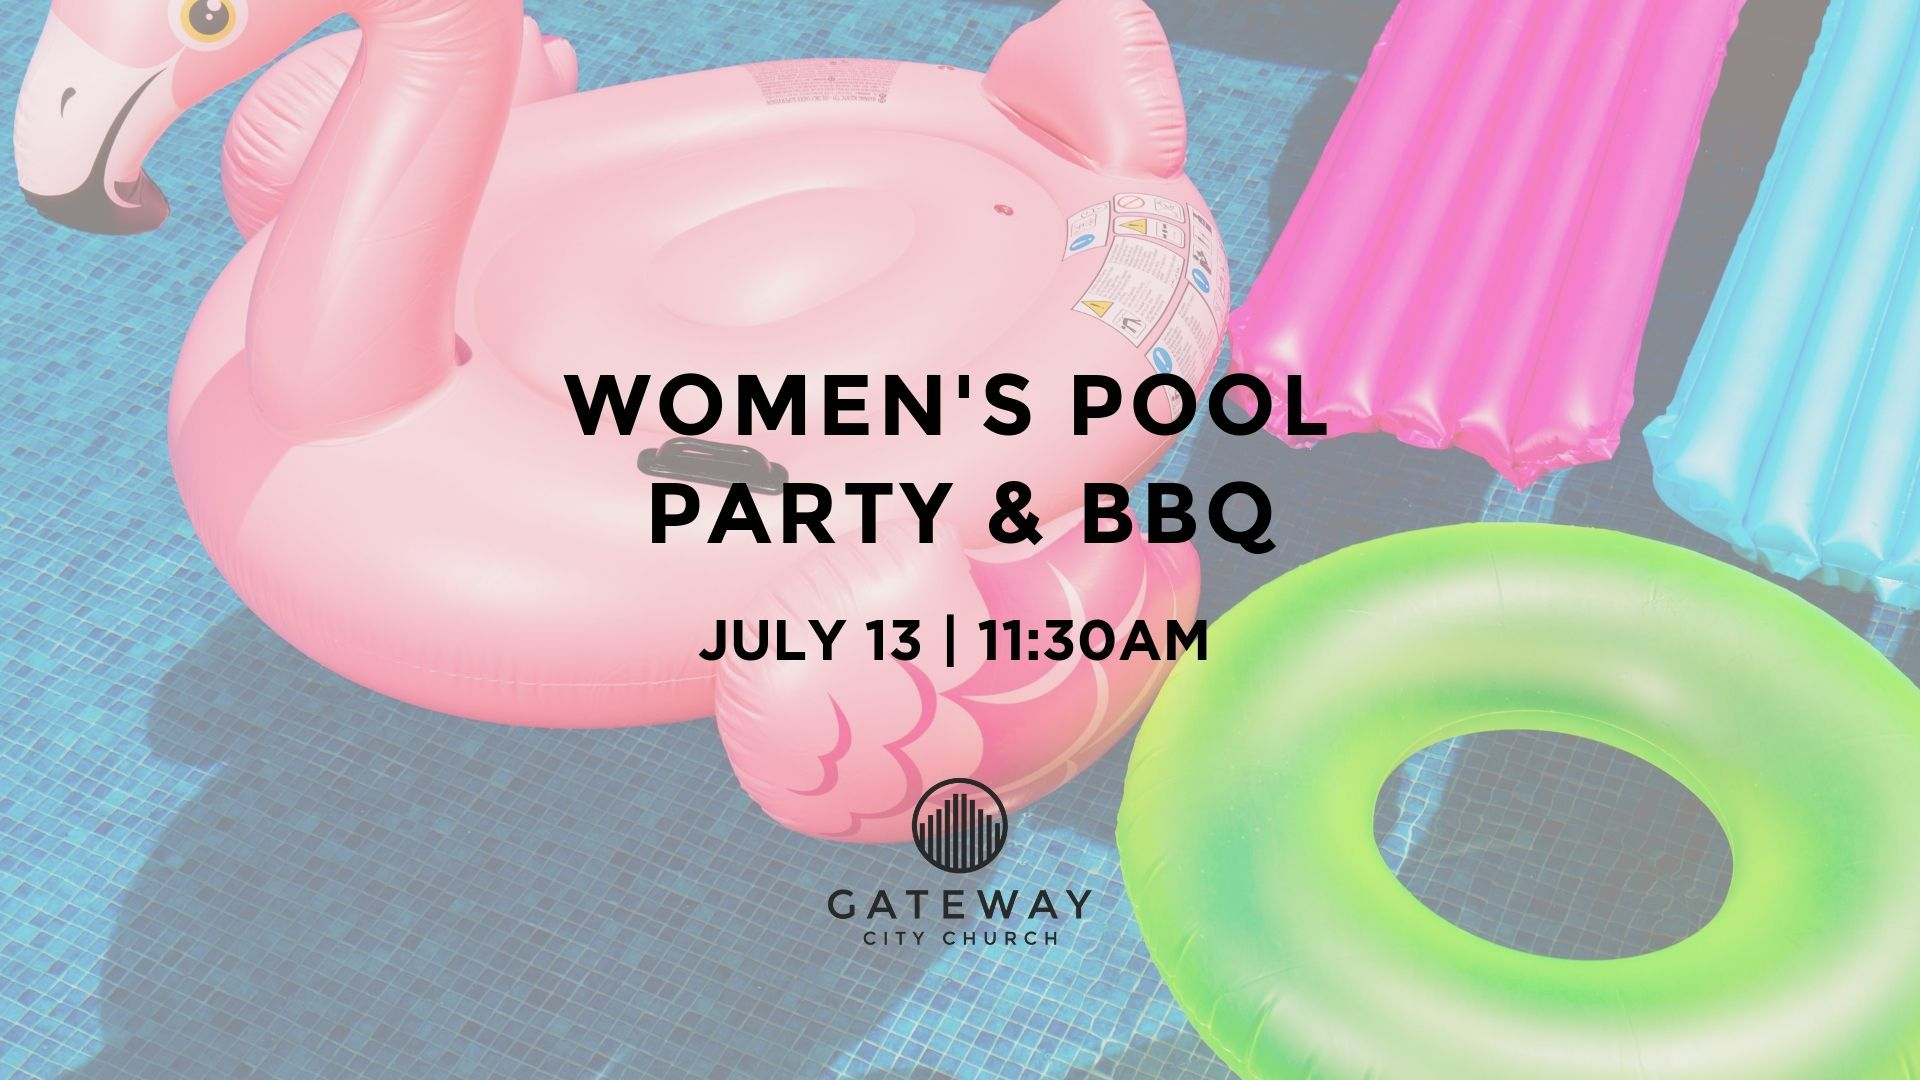 CLOVIS_ WOMEN'S POOL PARTY & BBQ.jpg